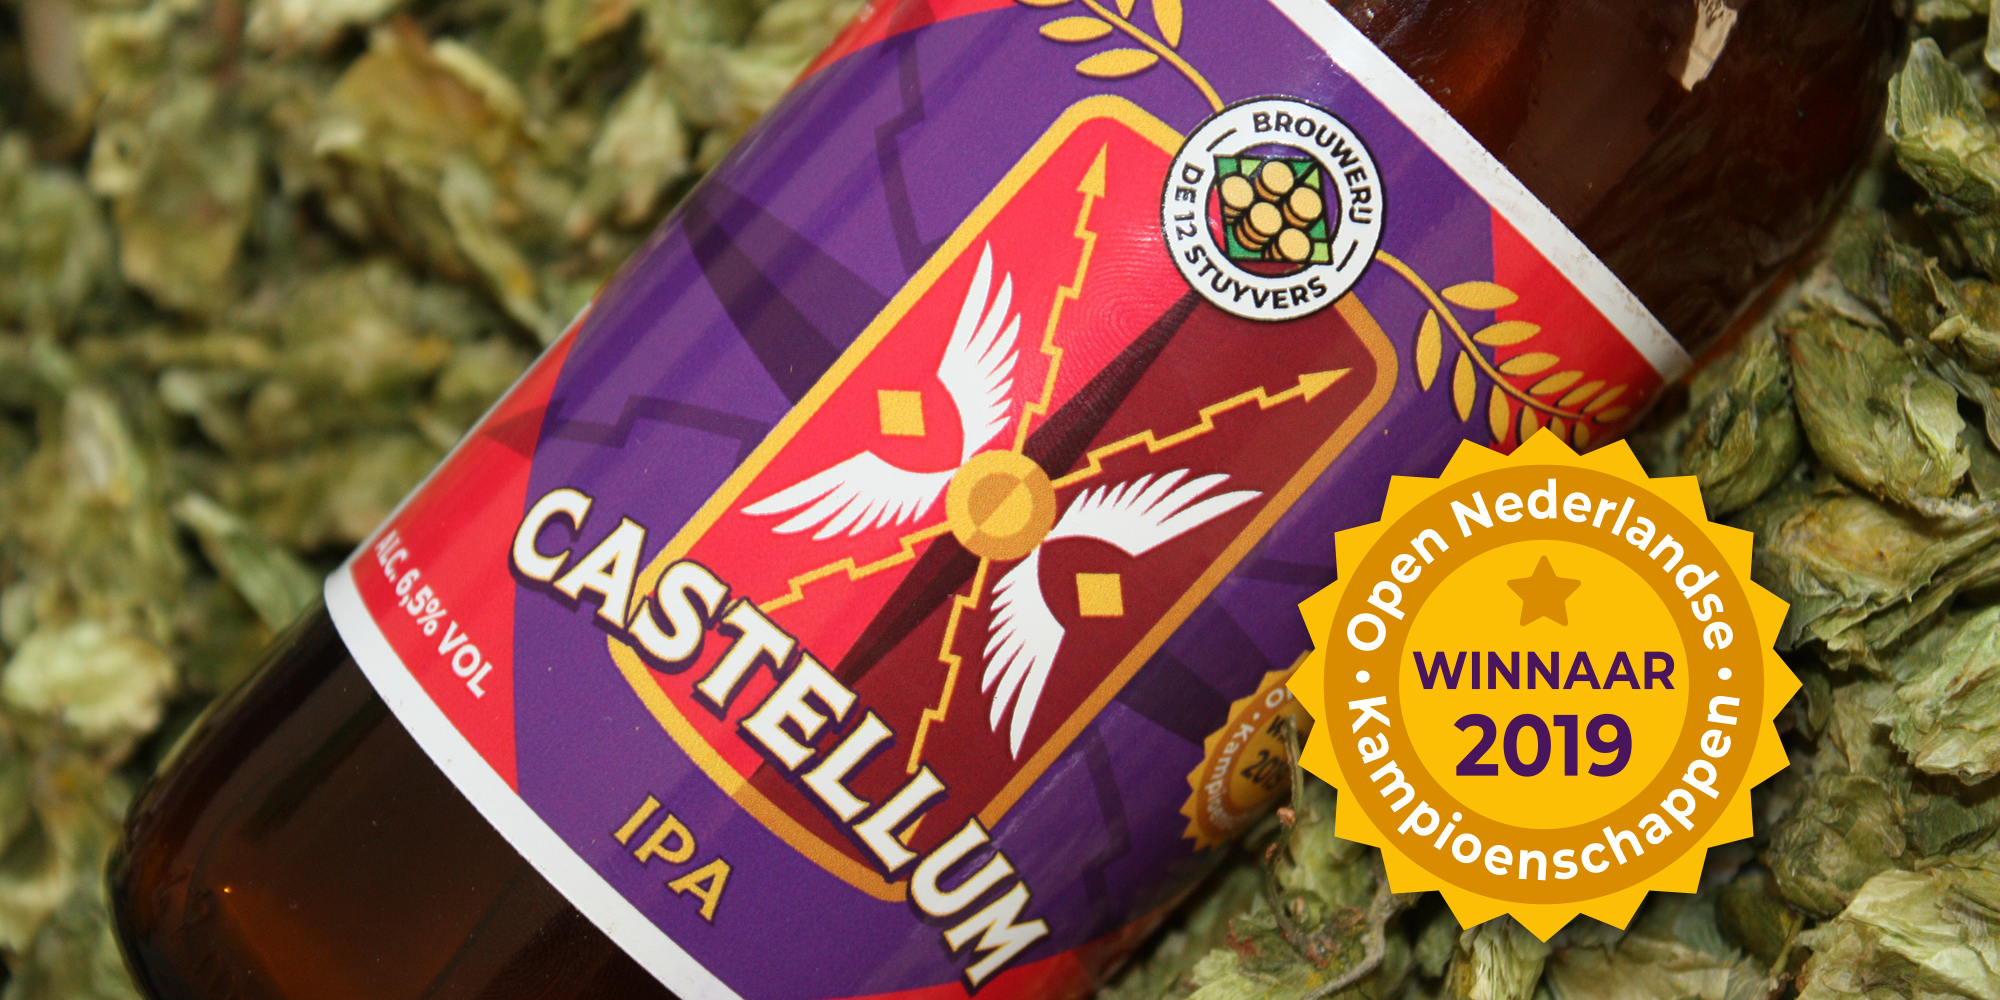 Castellum, Indian pale Ale, winnaar ONK 2019